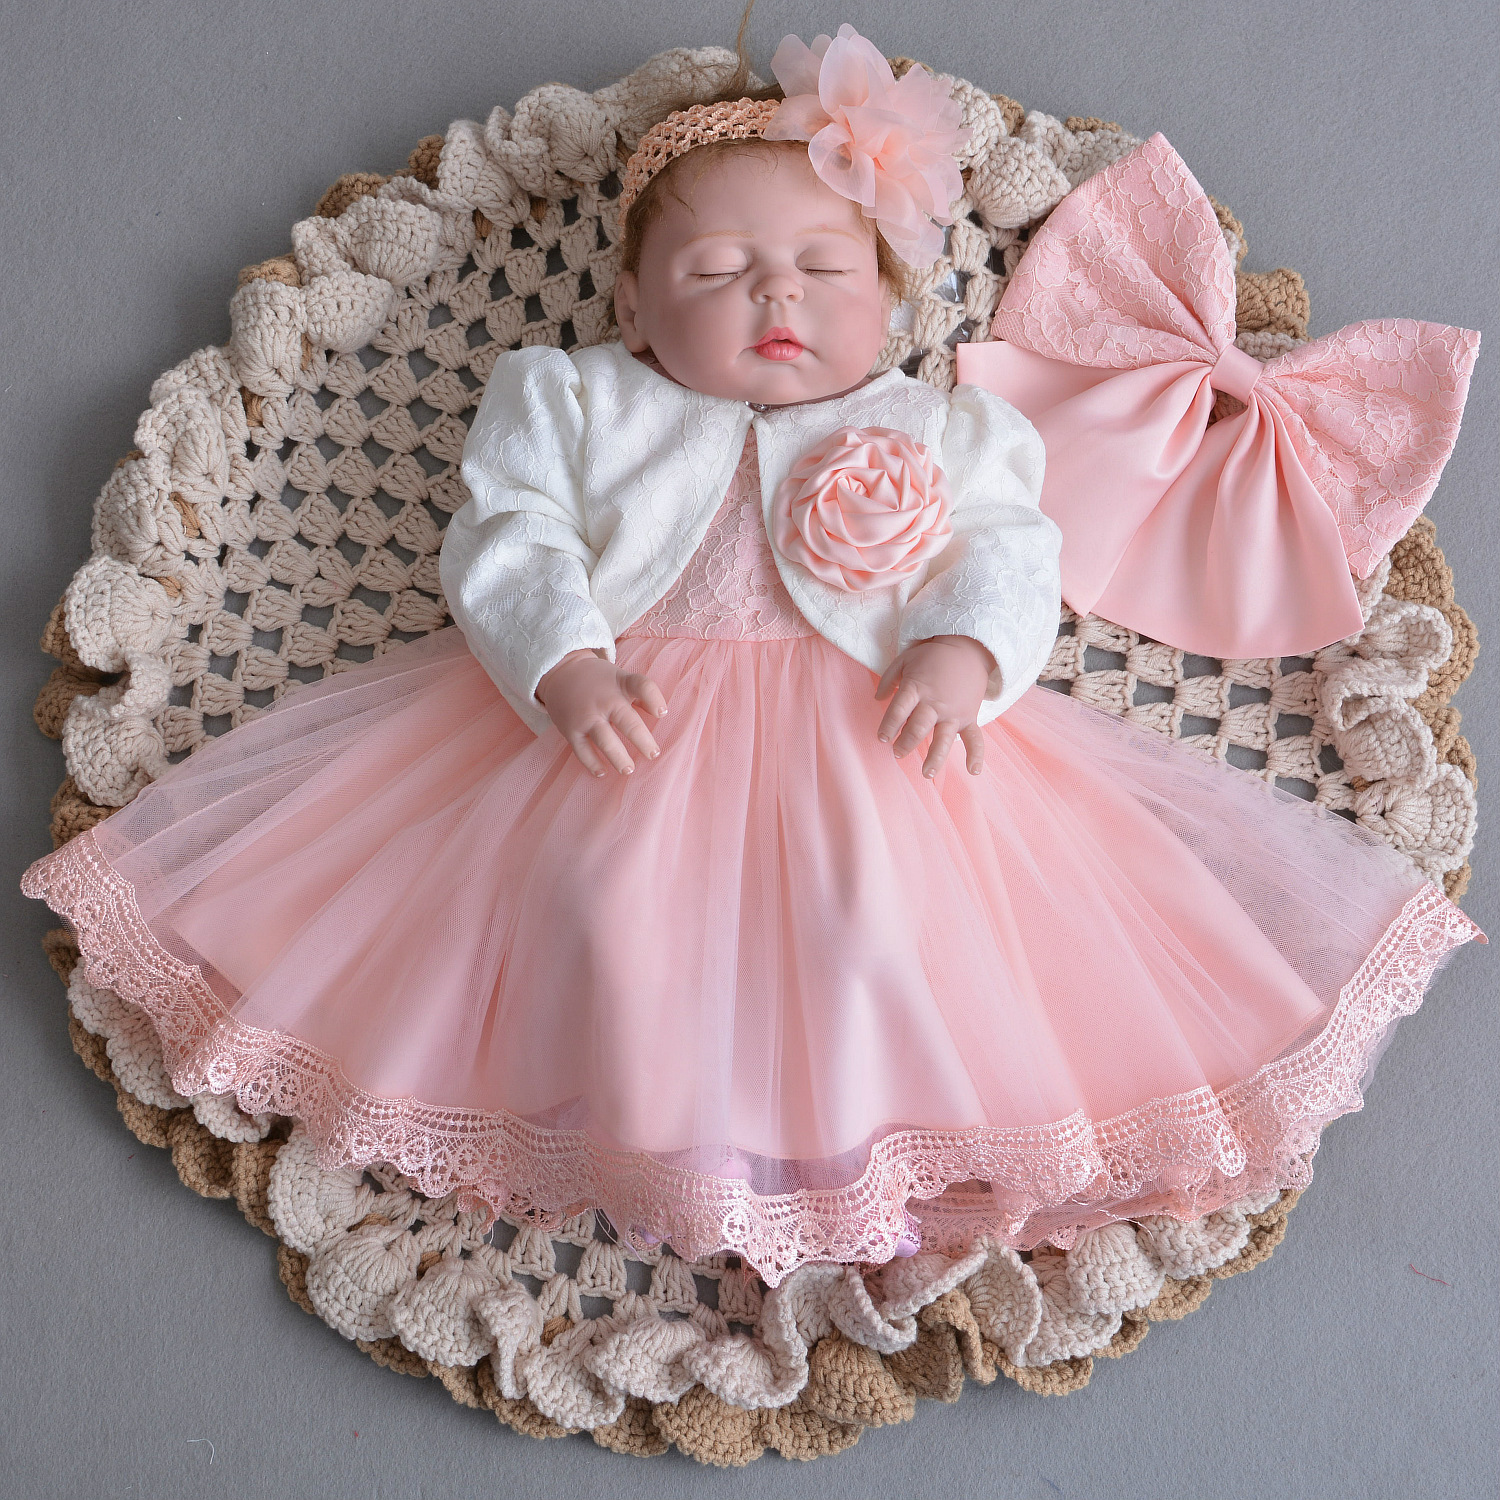 2018 baby infant newborn girl winter princess dress + headband+ outwear 3pcs set new born 1 2 year birthday party tutu dress plain headband 3pcs